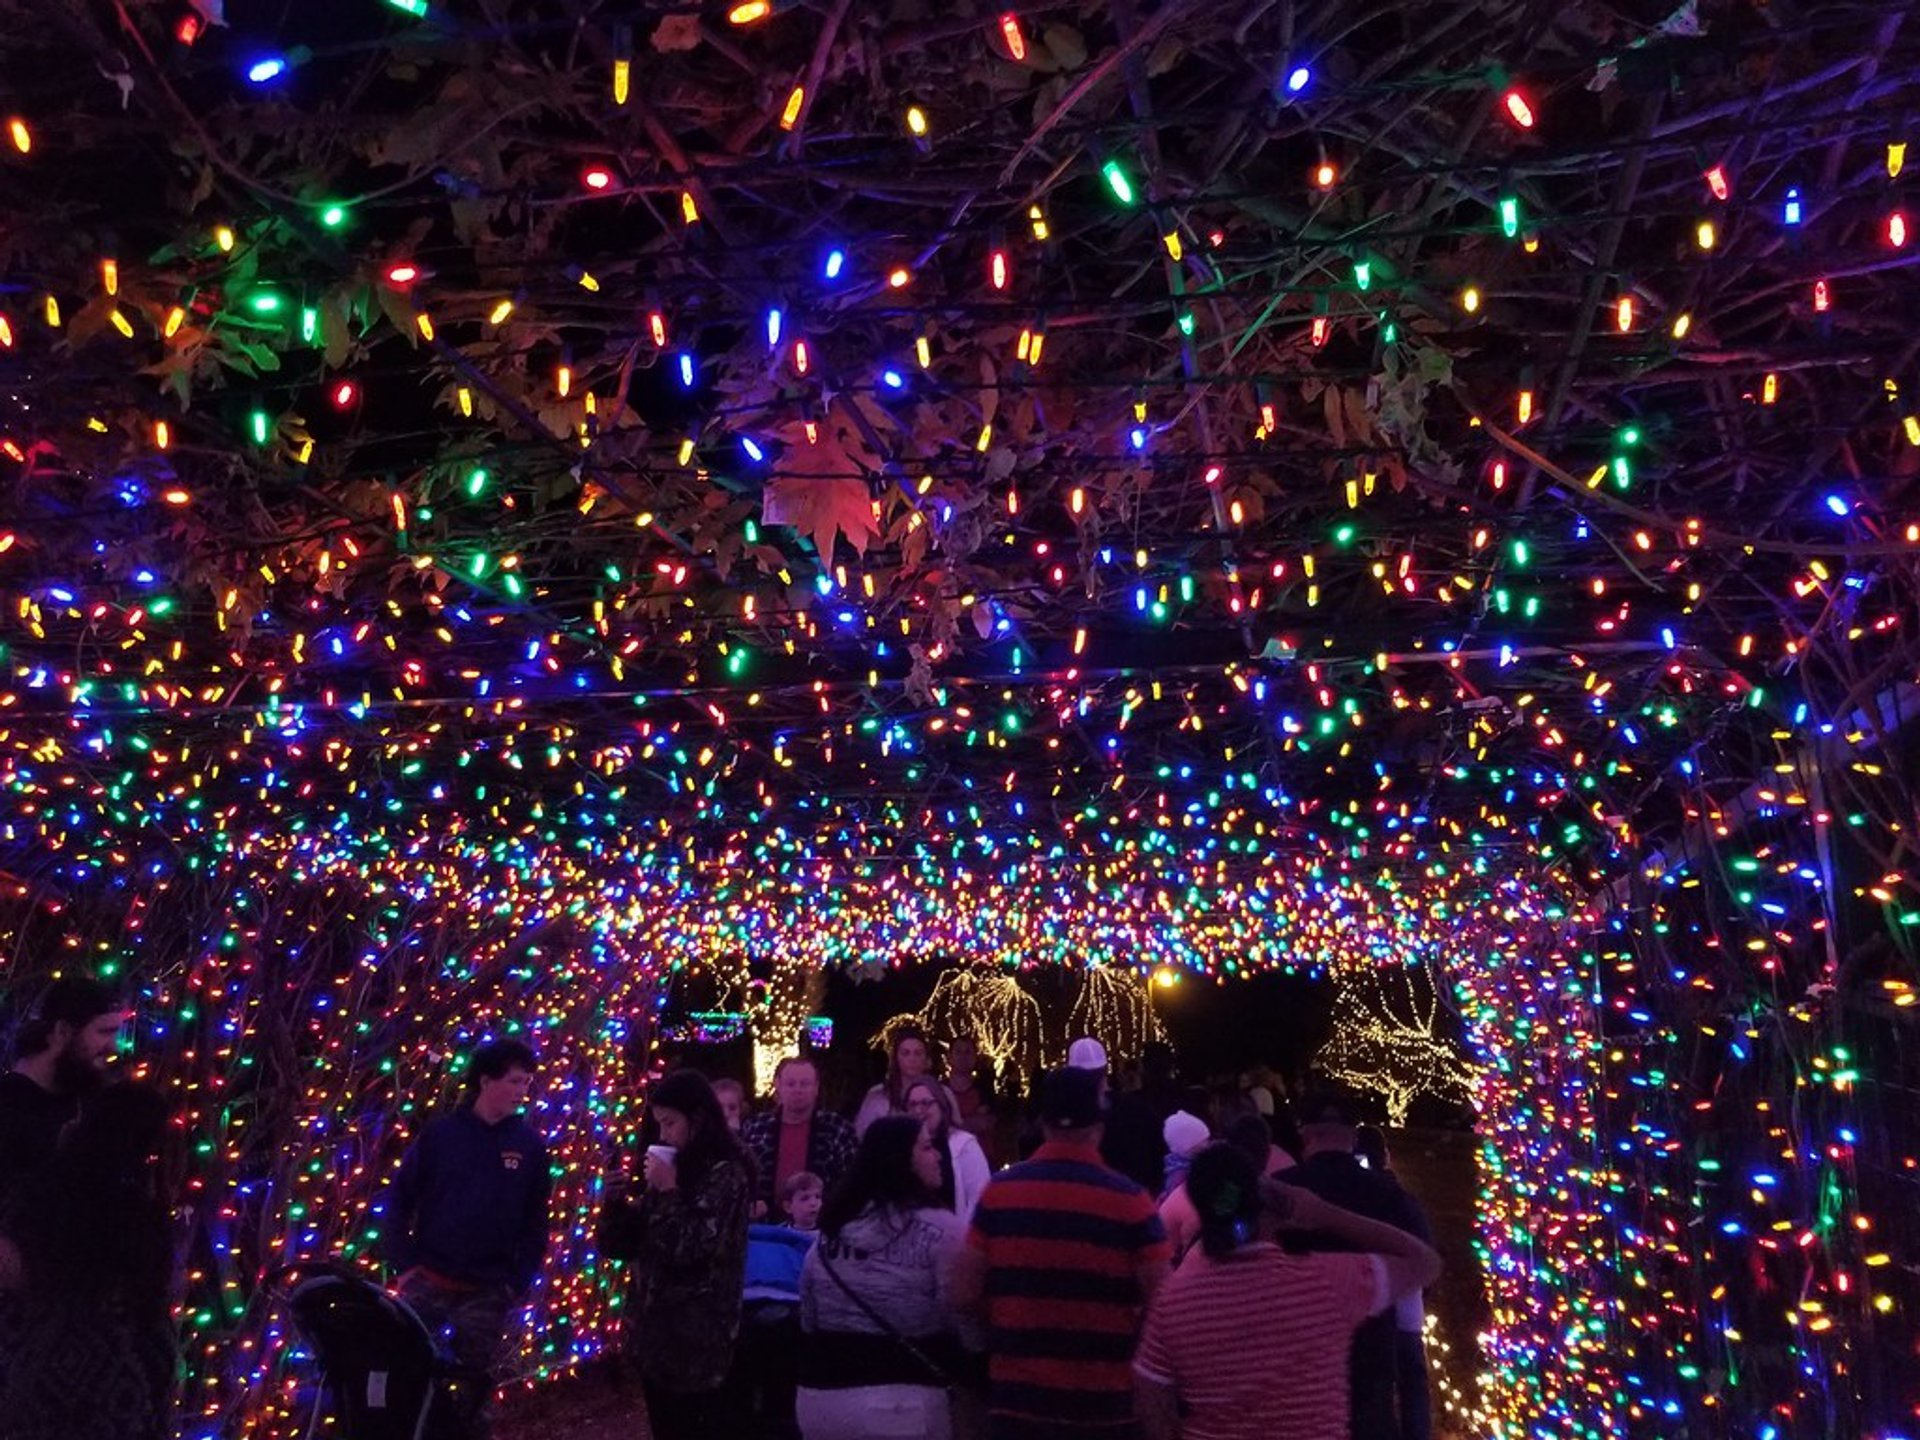 Christmas Lights in Oklahoma 2020 - Best Time